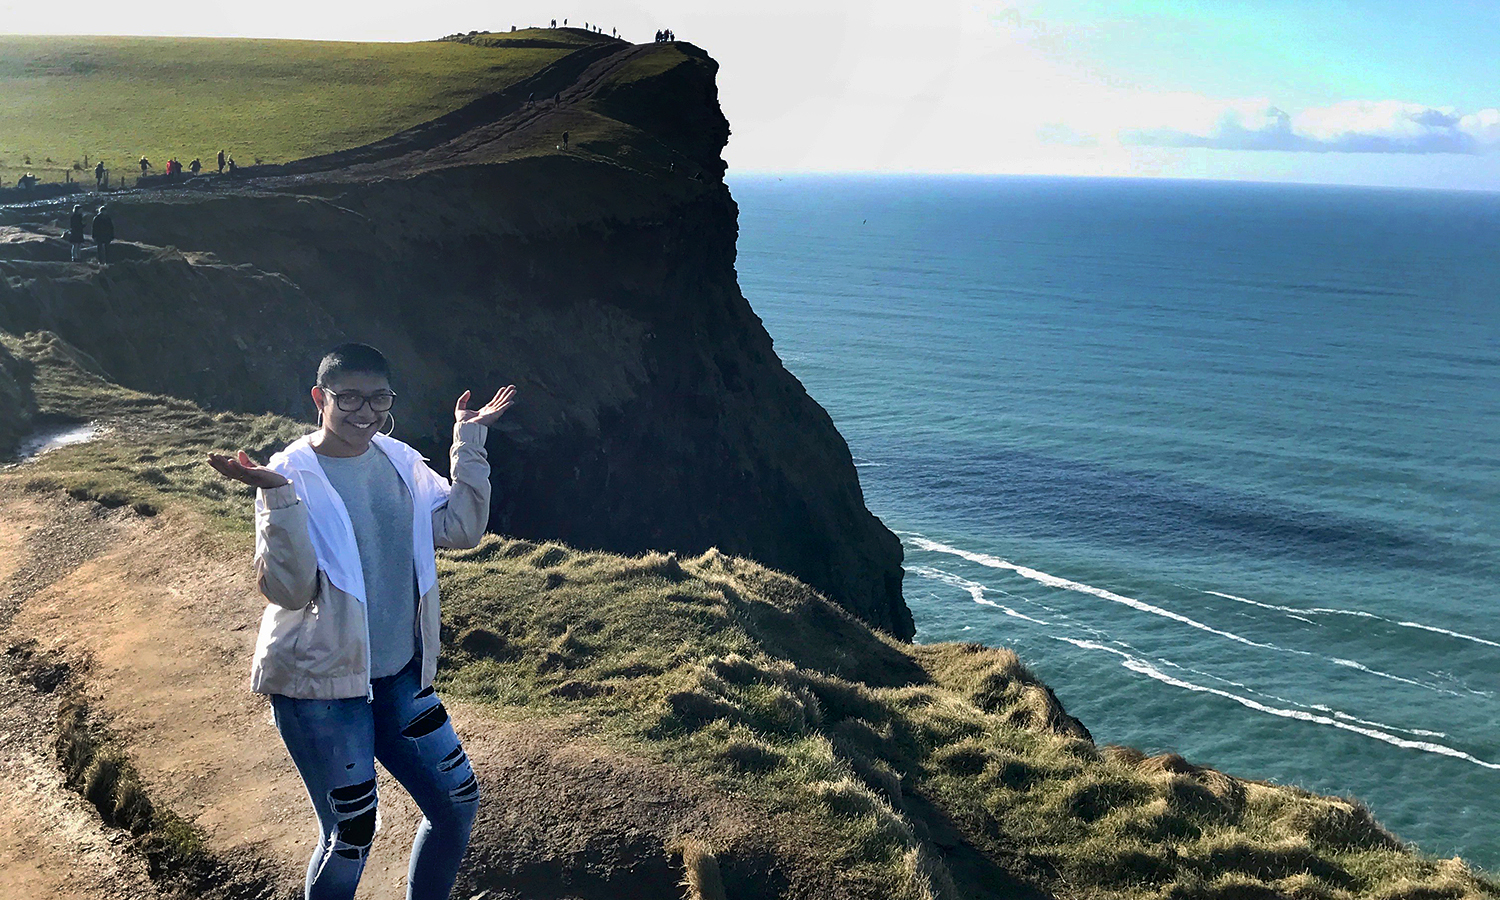 Jessica Ramtahal '20 poses for a photo at the Cliffs of Moher during her study abroad program in Galway, Ireland. An English major, Ramtahal is the recipient of this year's Lillian E. Collins Endowed Scholarship.